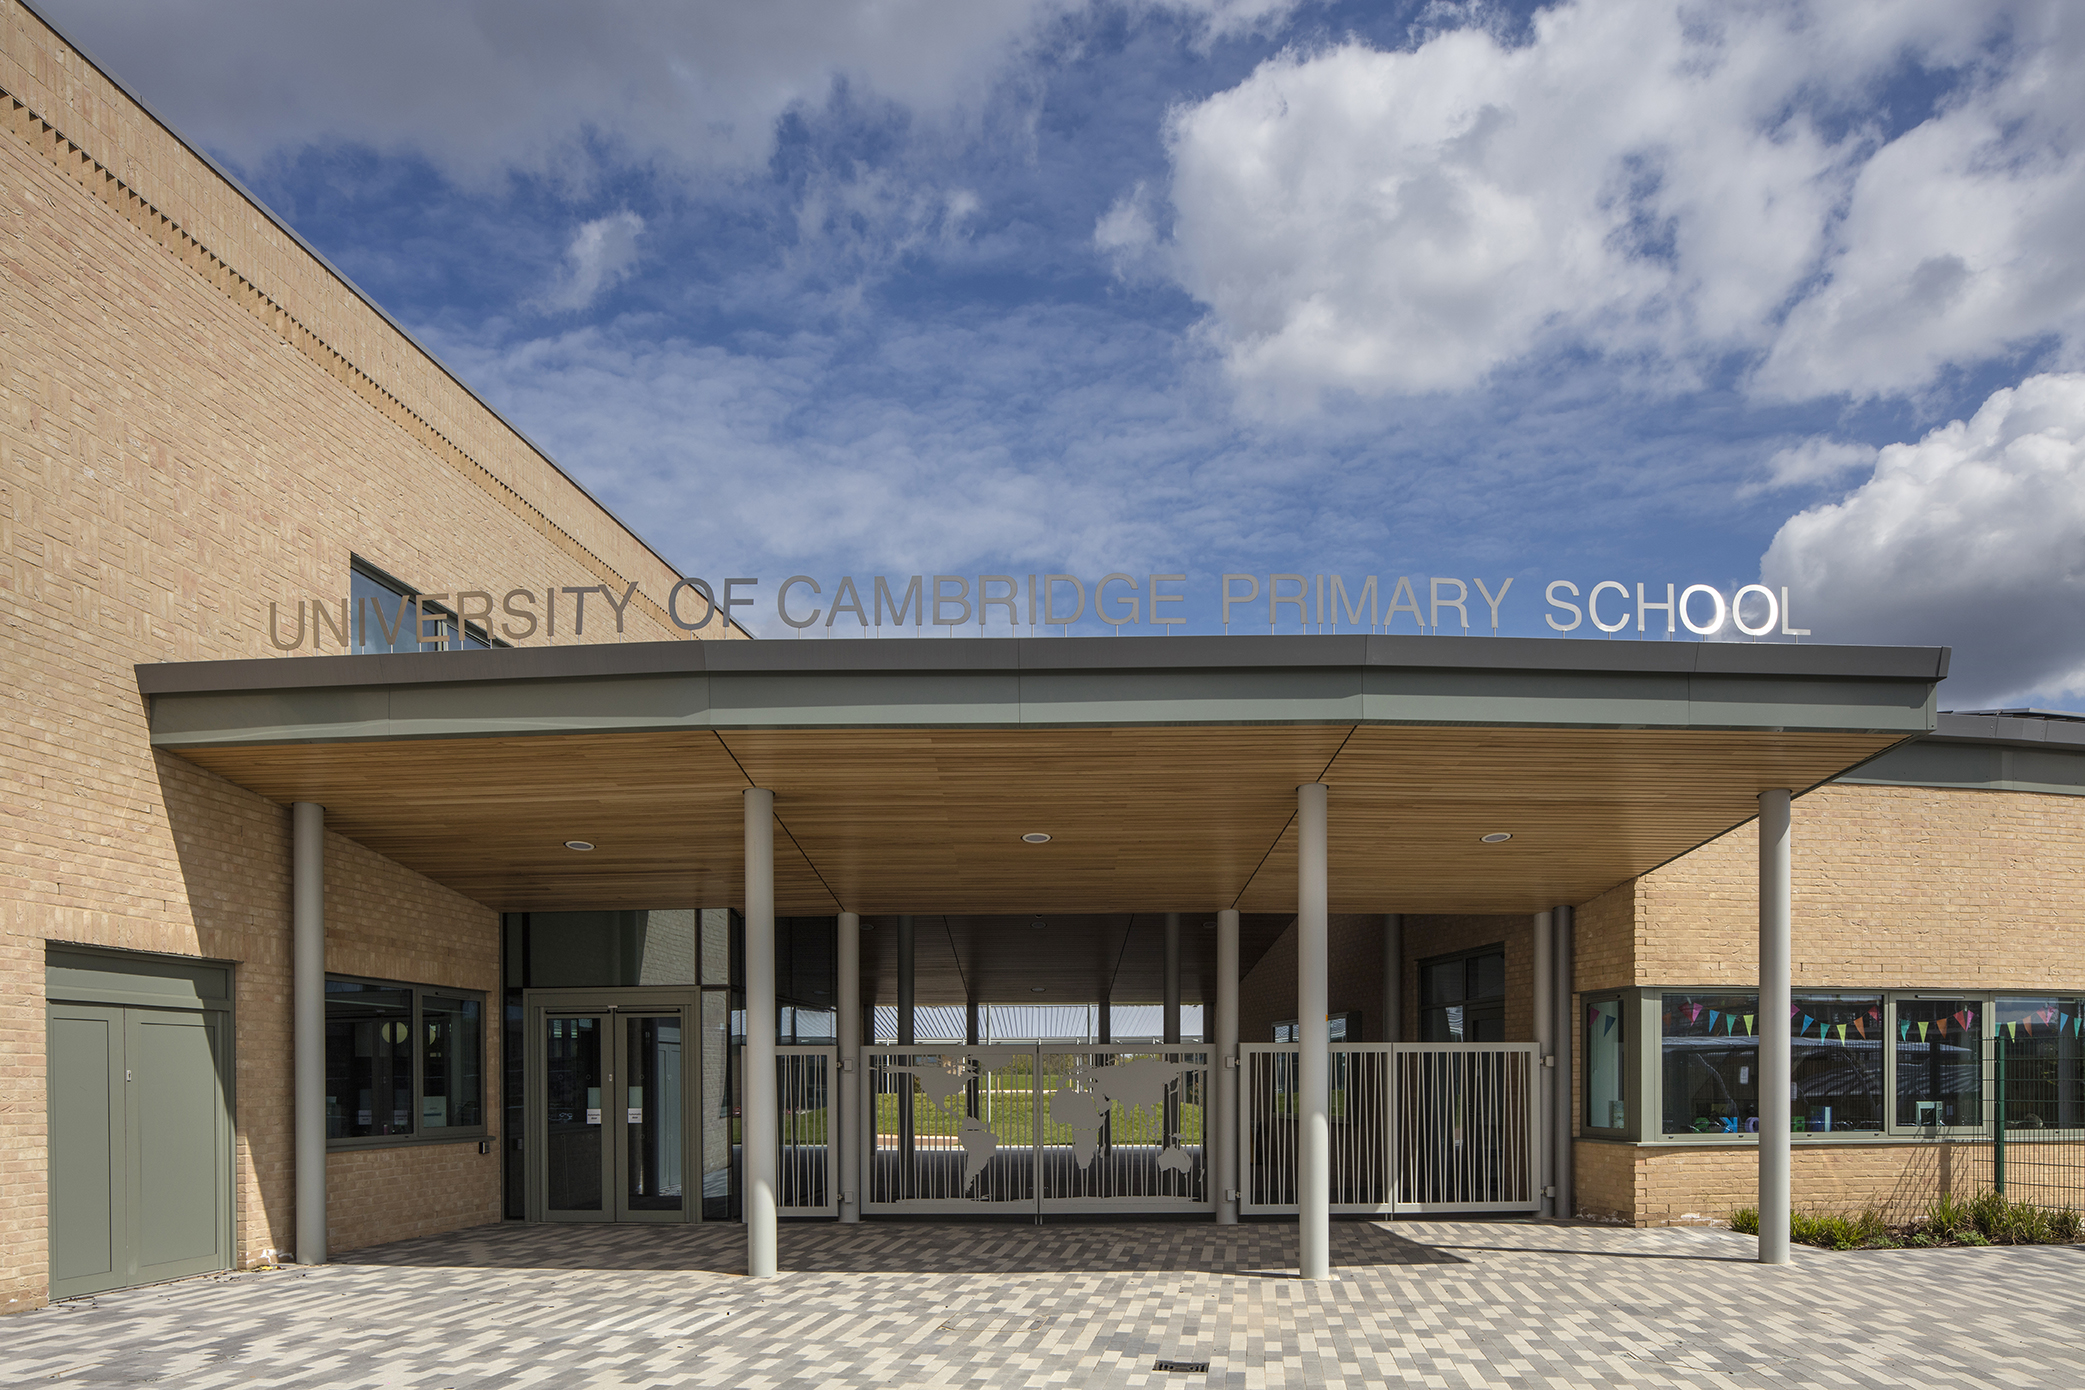 entrance - University of Cambridge Primary School by Marks Barfield Architects